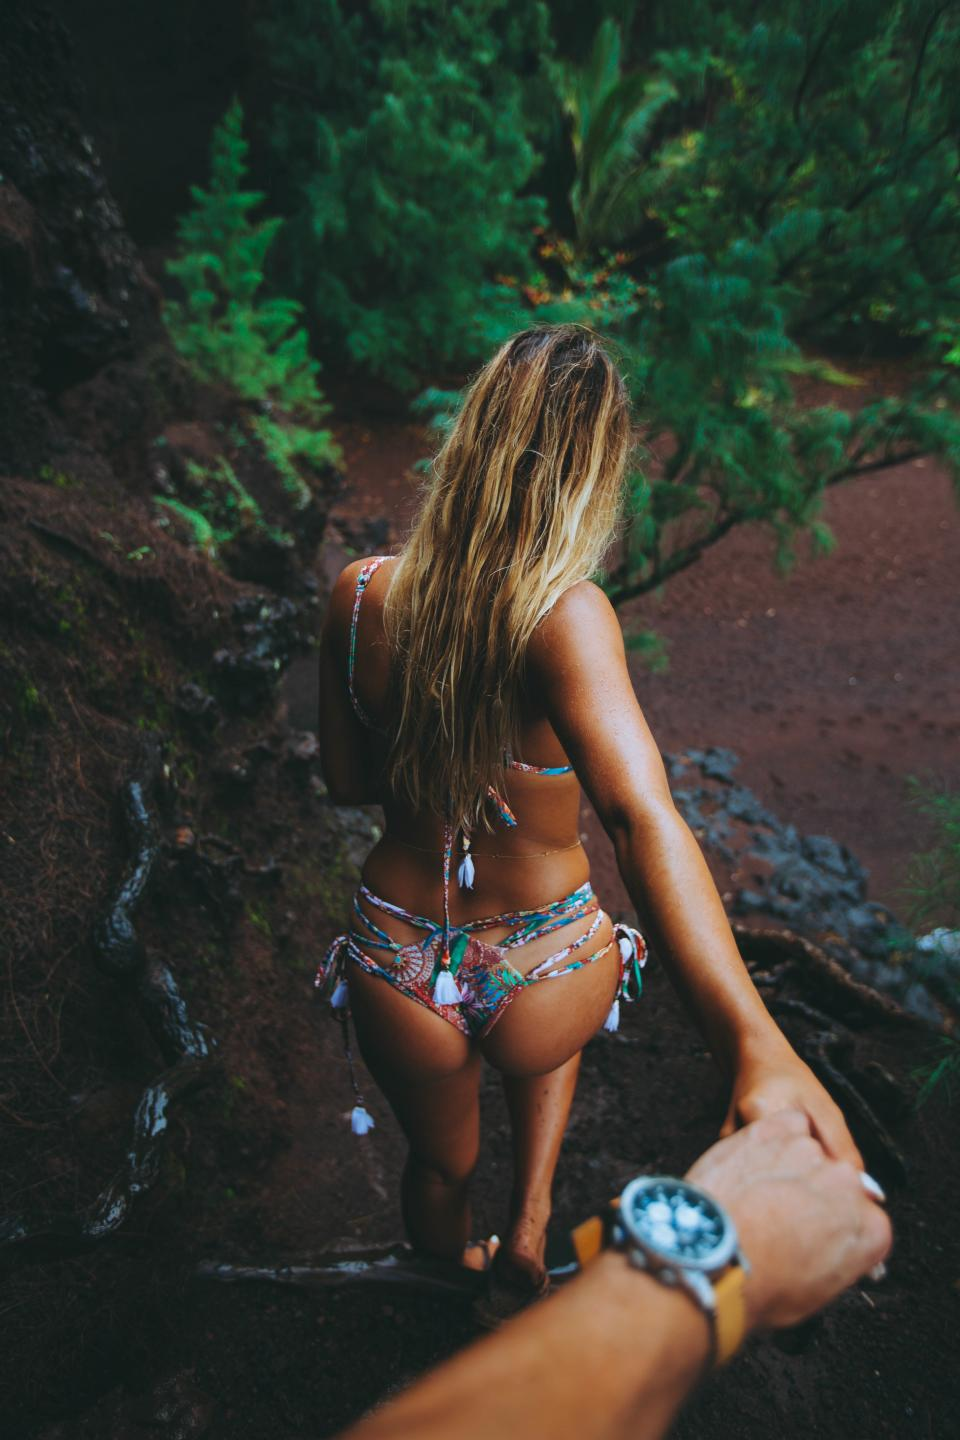 people, girl, female, sexy, swimsuit, swimming, holding hand, arm, watch, outdoor, nature